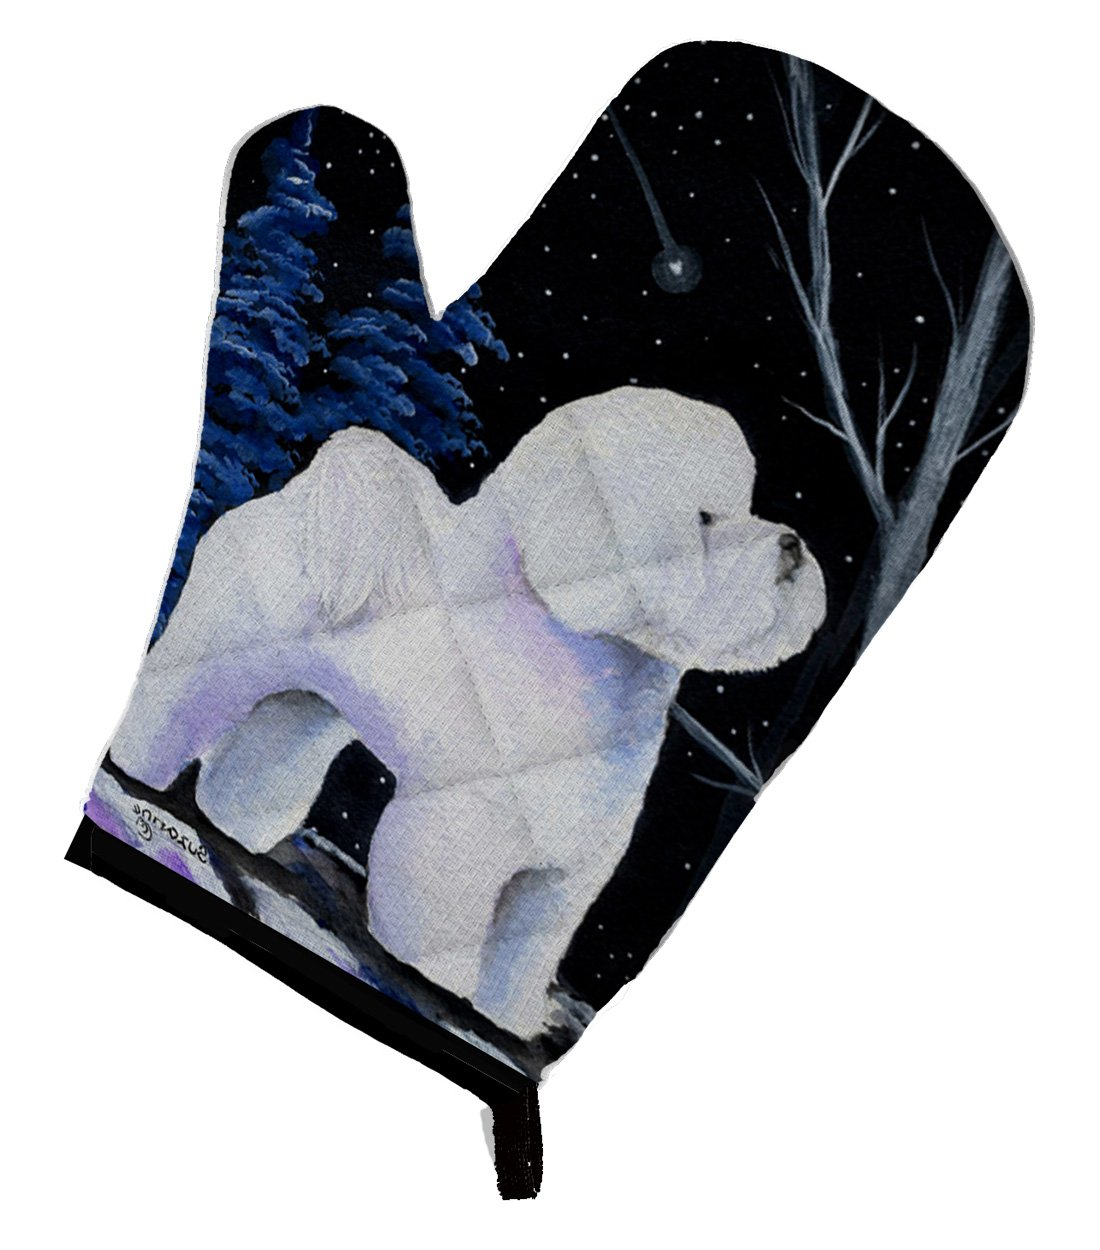 12 by 8.5 Carolines Treasures SS8397OVMT Starry Night Bichon Frise Oven Mitt Multicolor